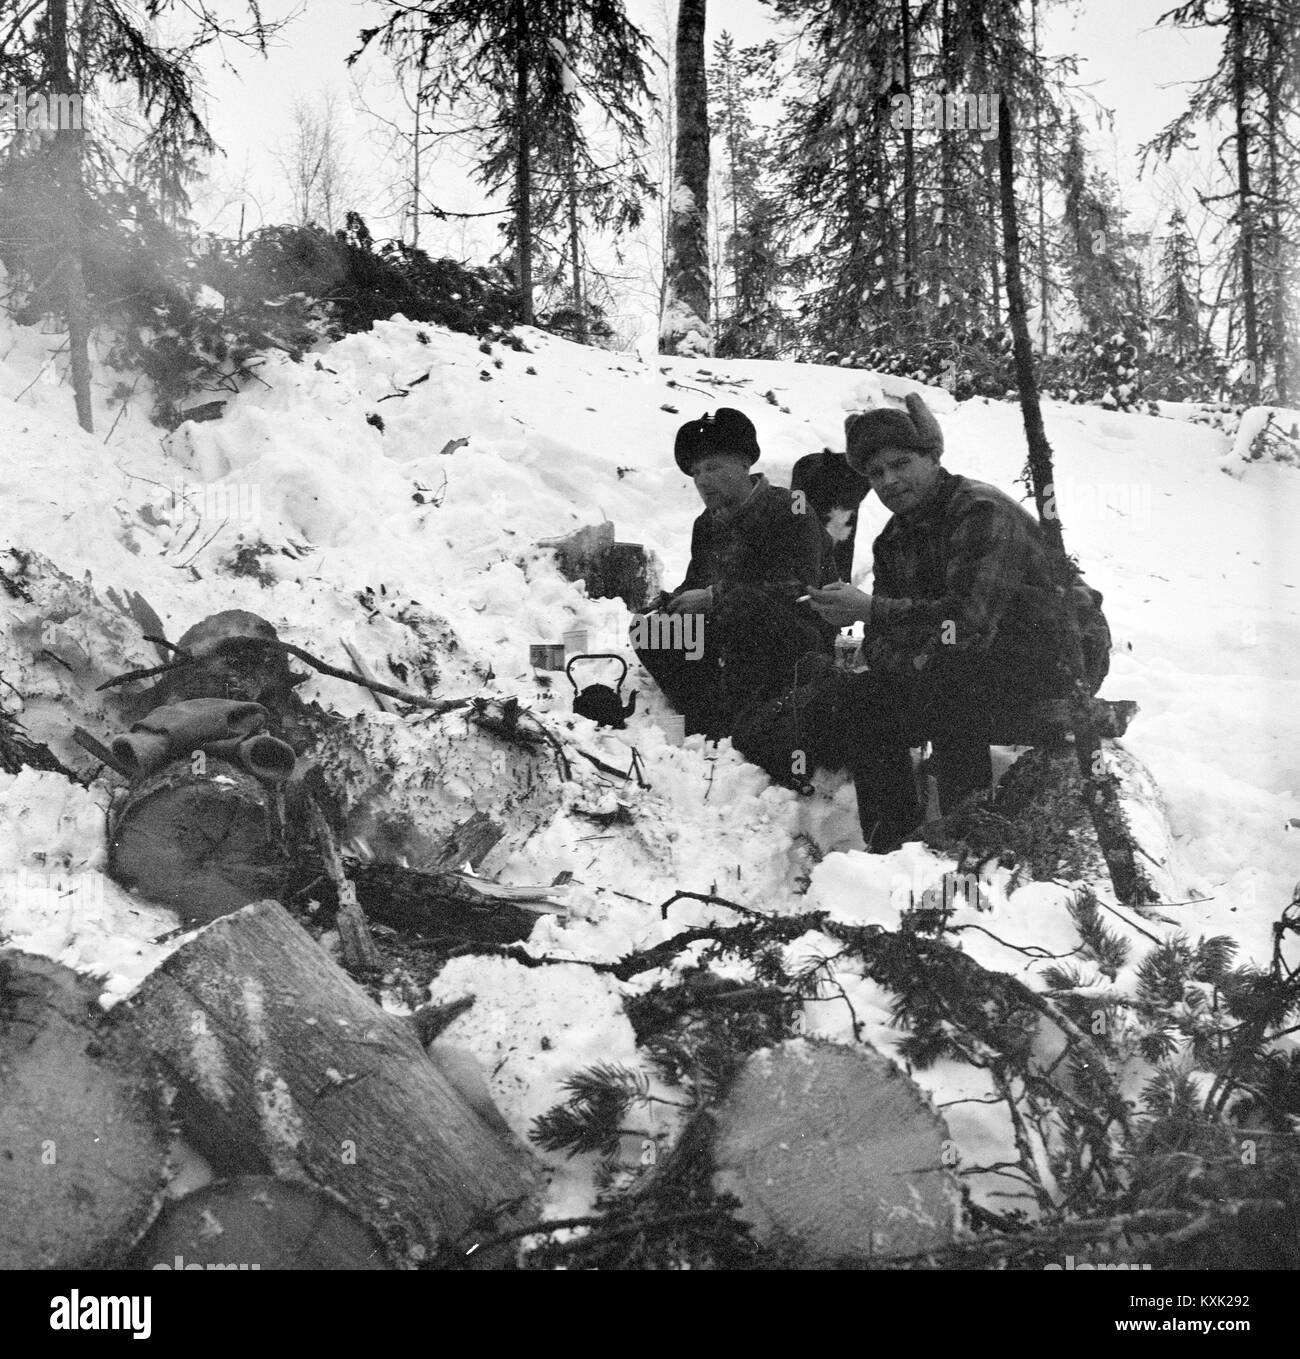 Forestry Workers Sitting By Fire Making A Hot Drink In Snow Covered Forest Finland 1959